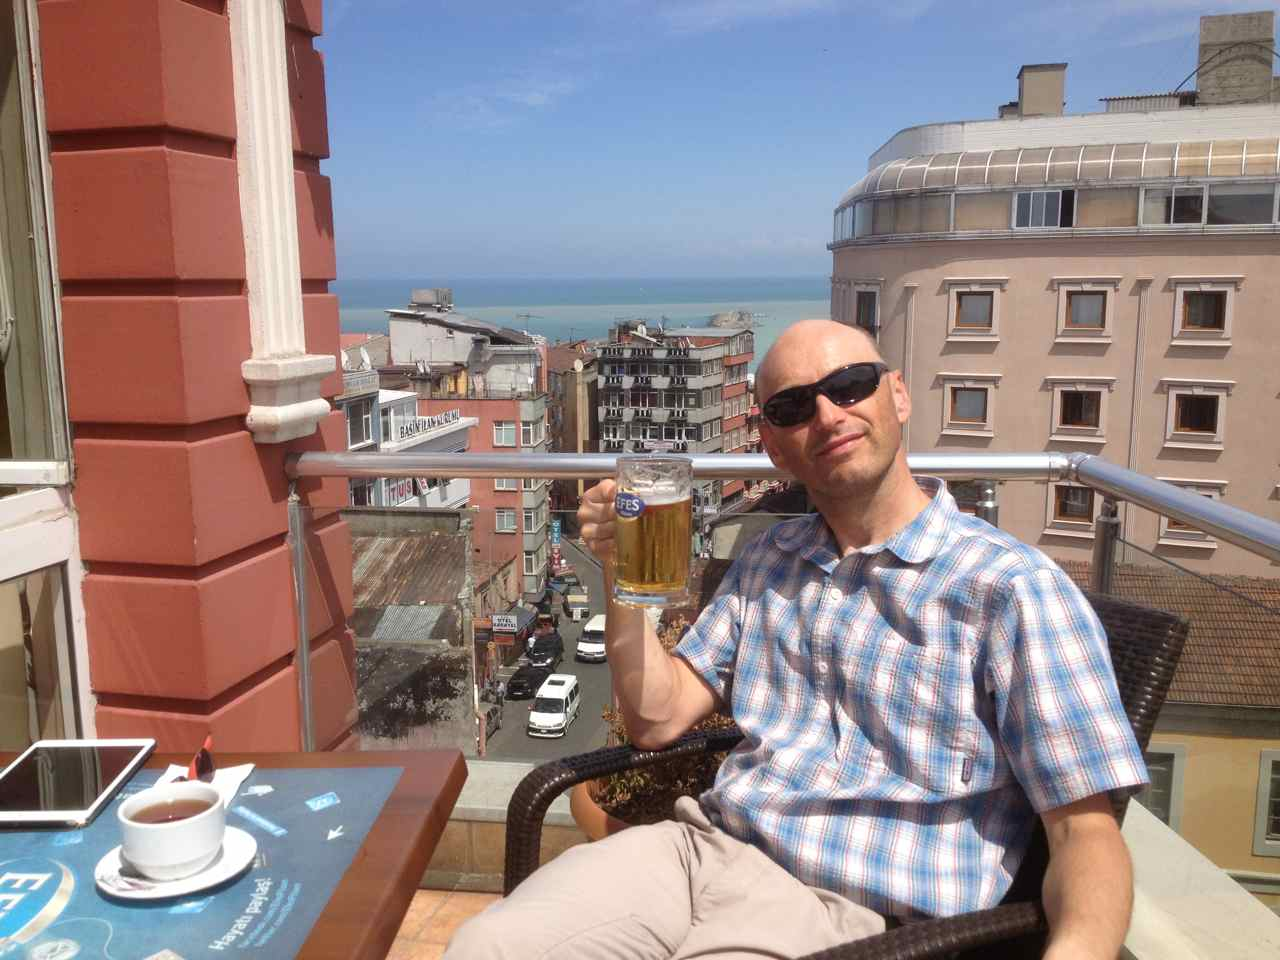 Relaxing with a beer while enjoying the view of the Black Sea and the city centre